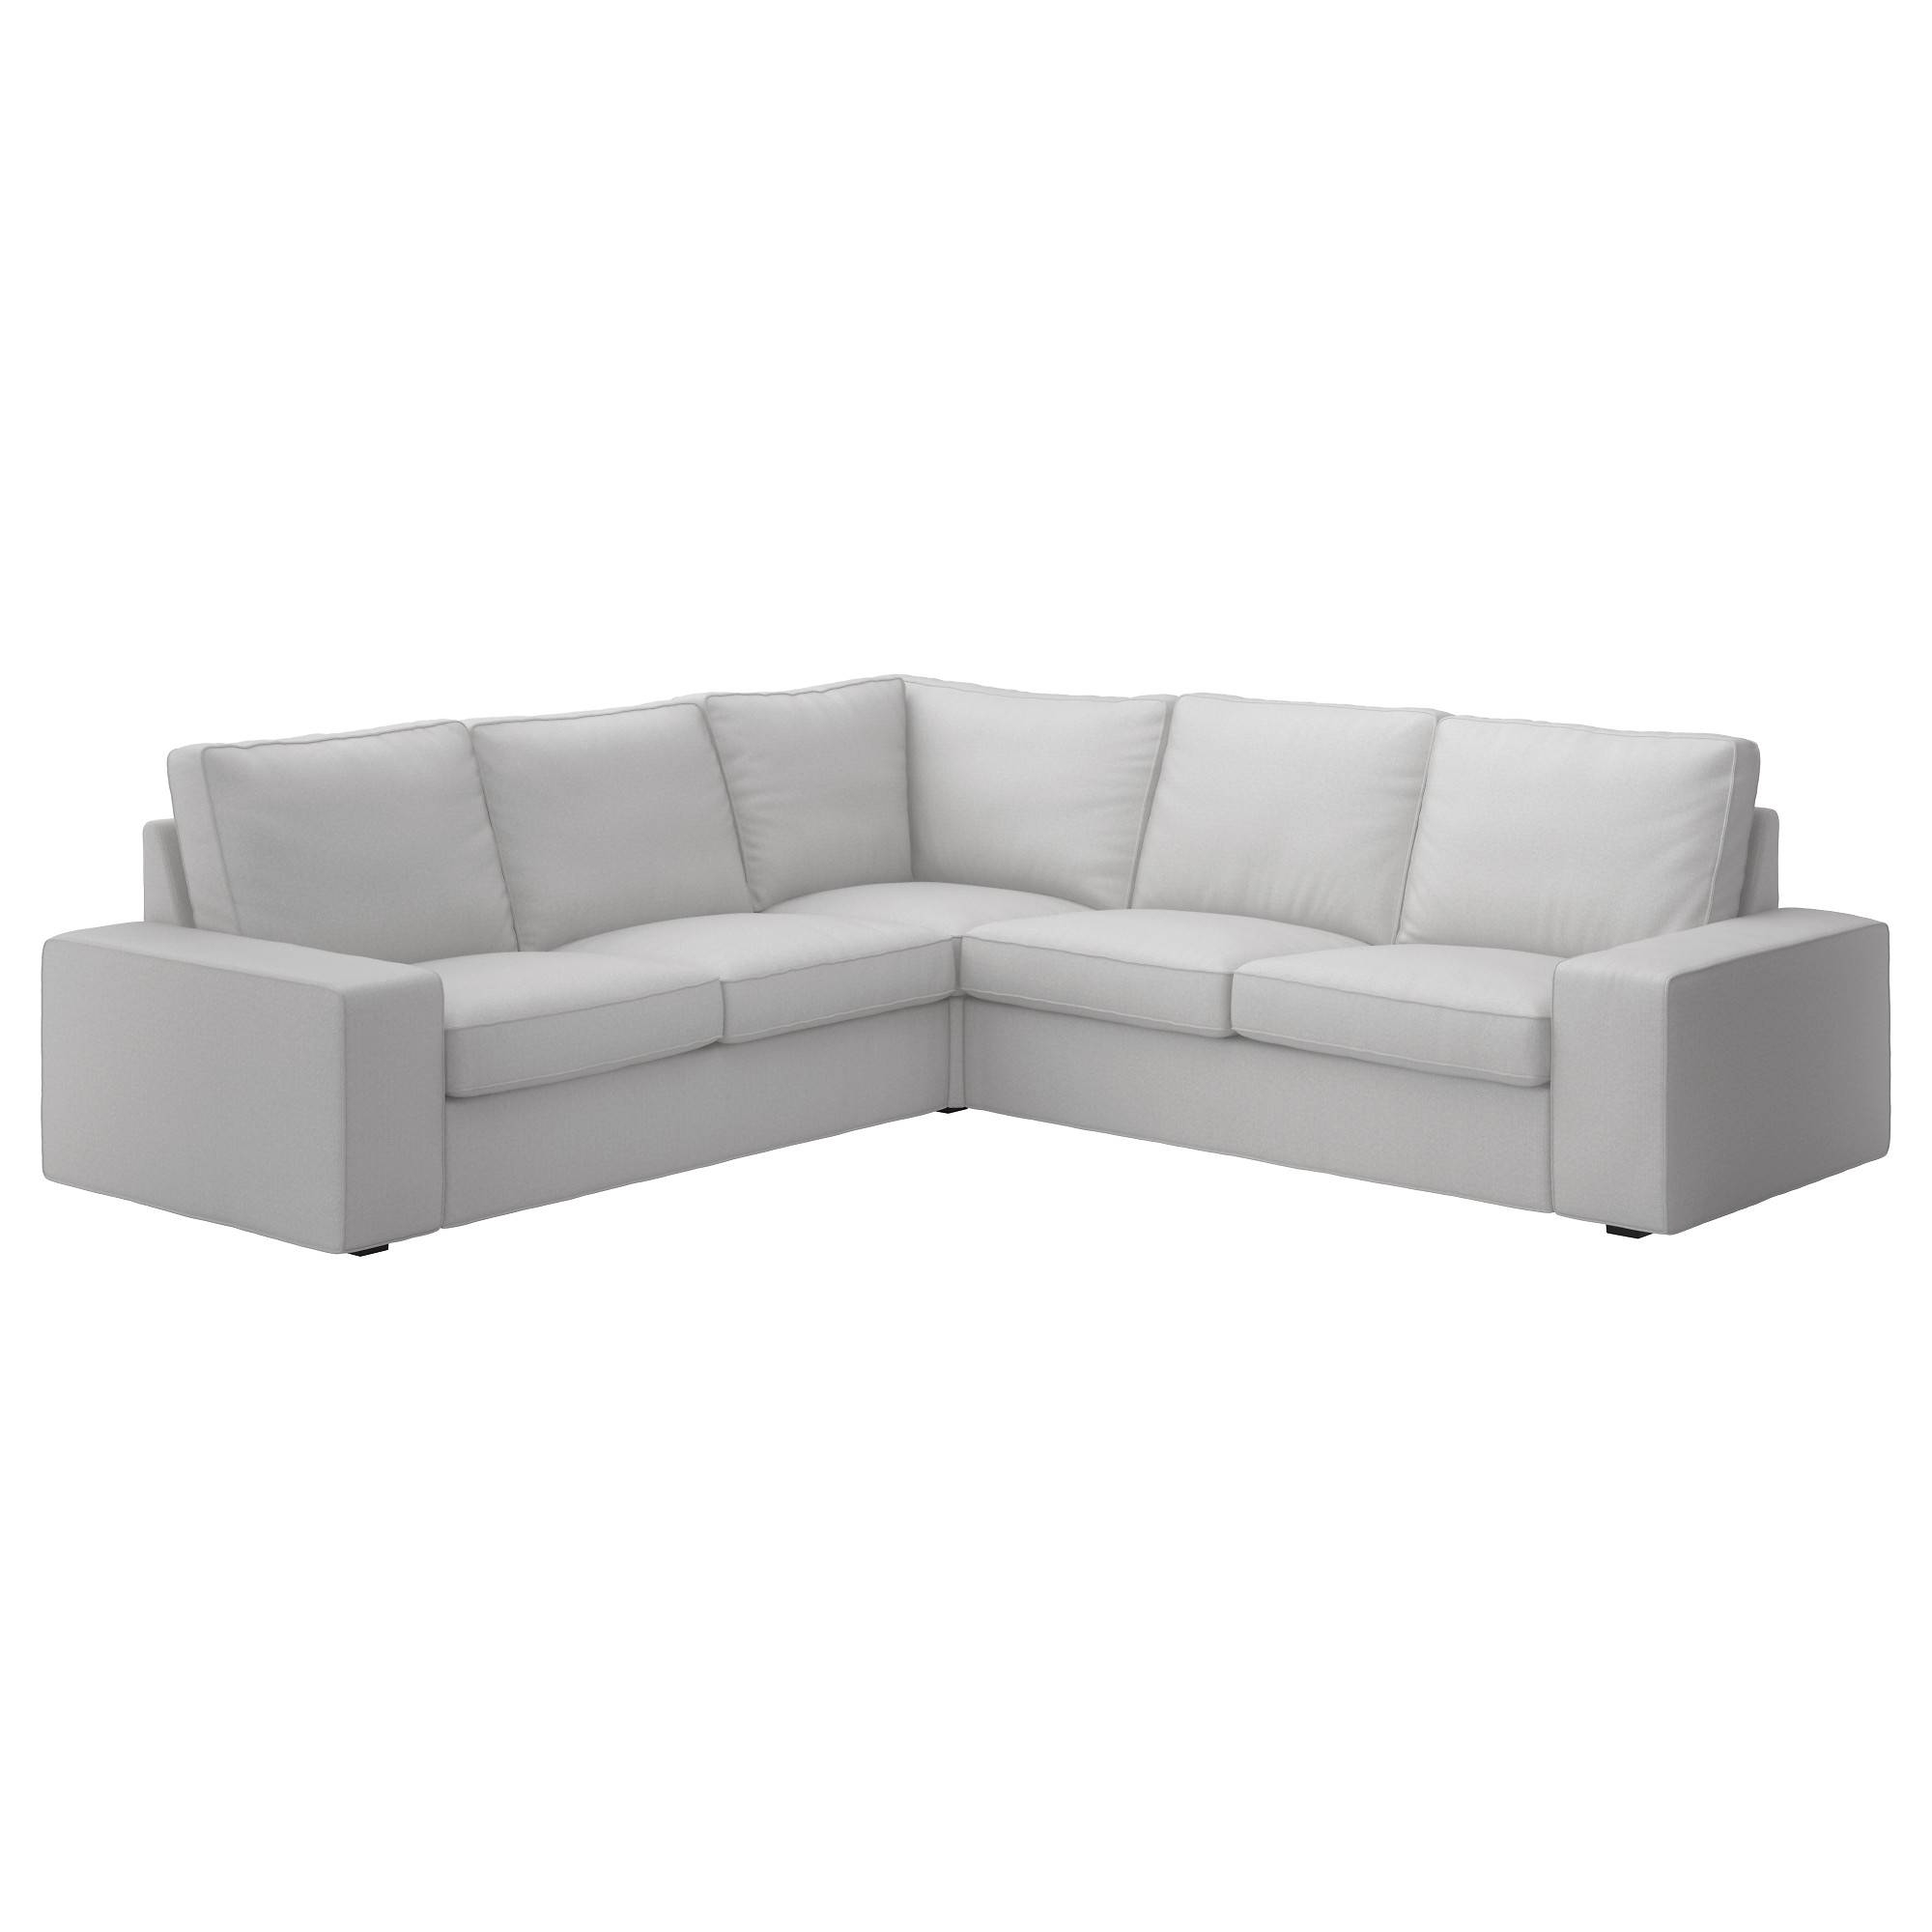 Kivik Sectional, 4-Seat Corner - Orrsta Light Gray - Ikea throughout 2X2 Corner Sofas (Image 19 of 30)